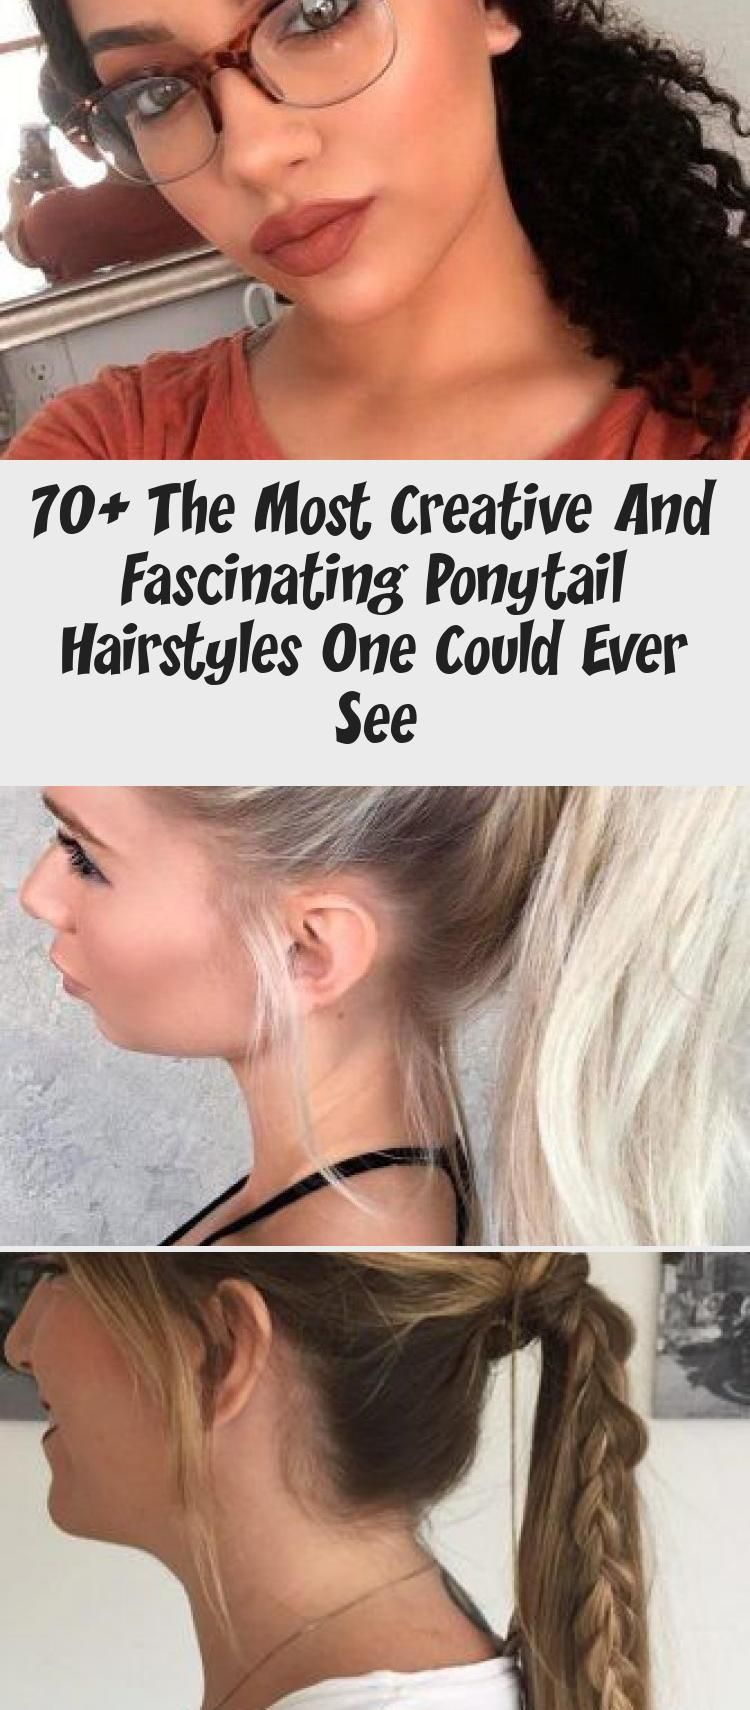 70 The Most Creative And Fascinating Ponytail Hairstyles One Could Ever See Hairstyle In 2020 Ponytail Hairstyles Hair Styles Loose Hairstyles